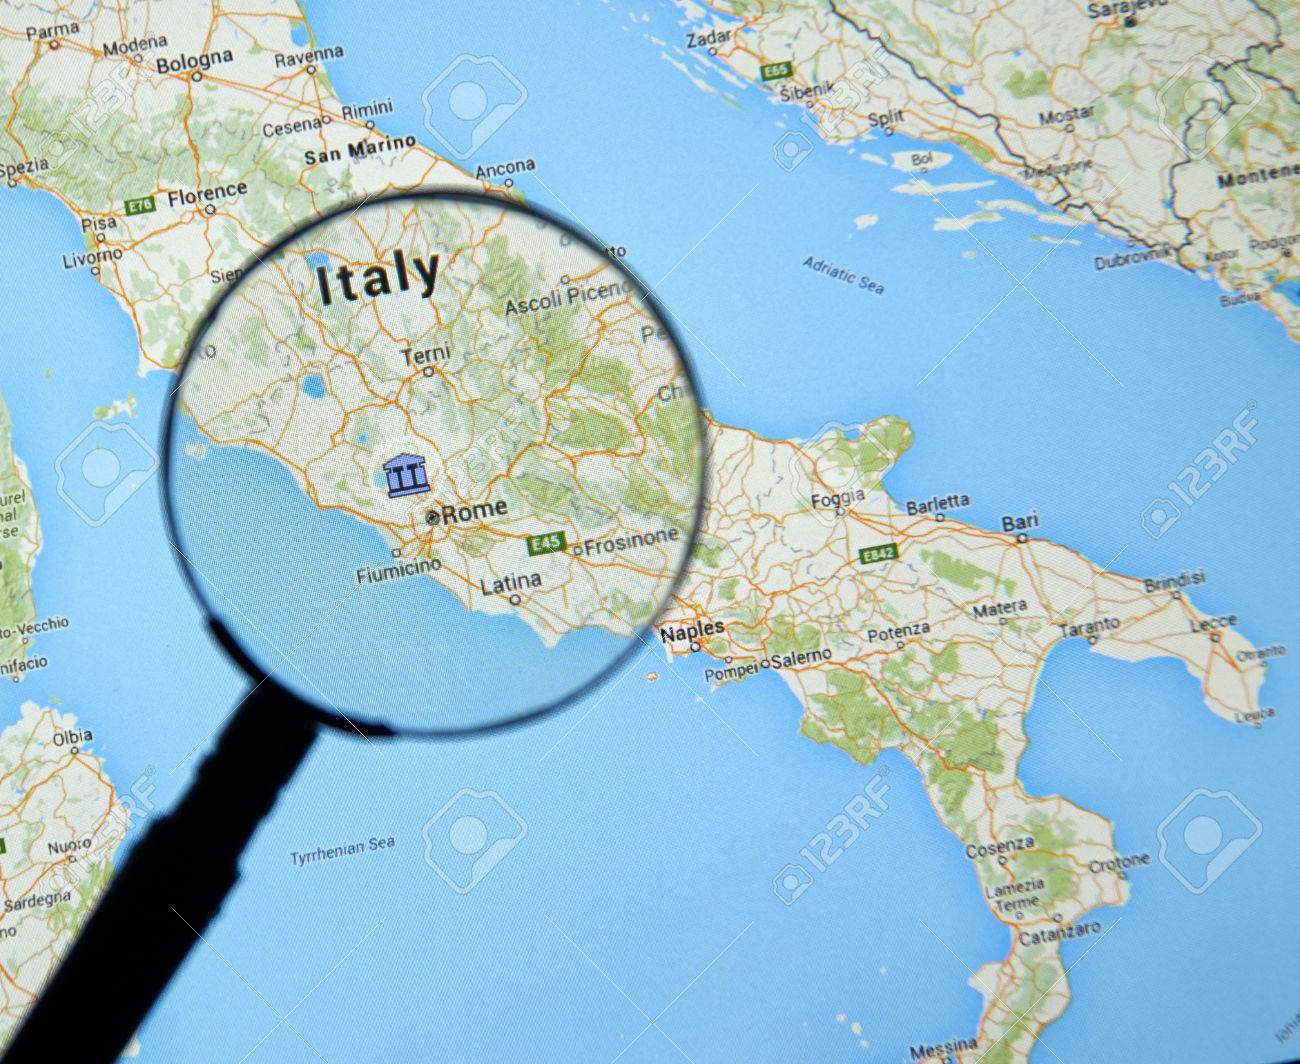 Montreal Canada February 2016 Italy And Rome On Google Stock